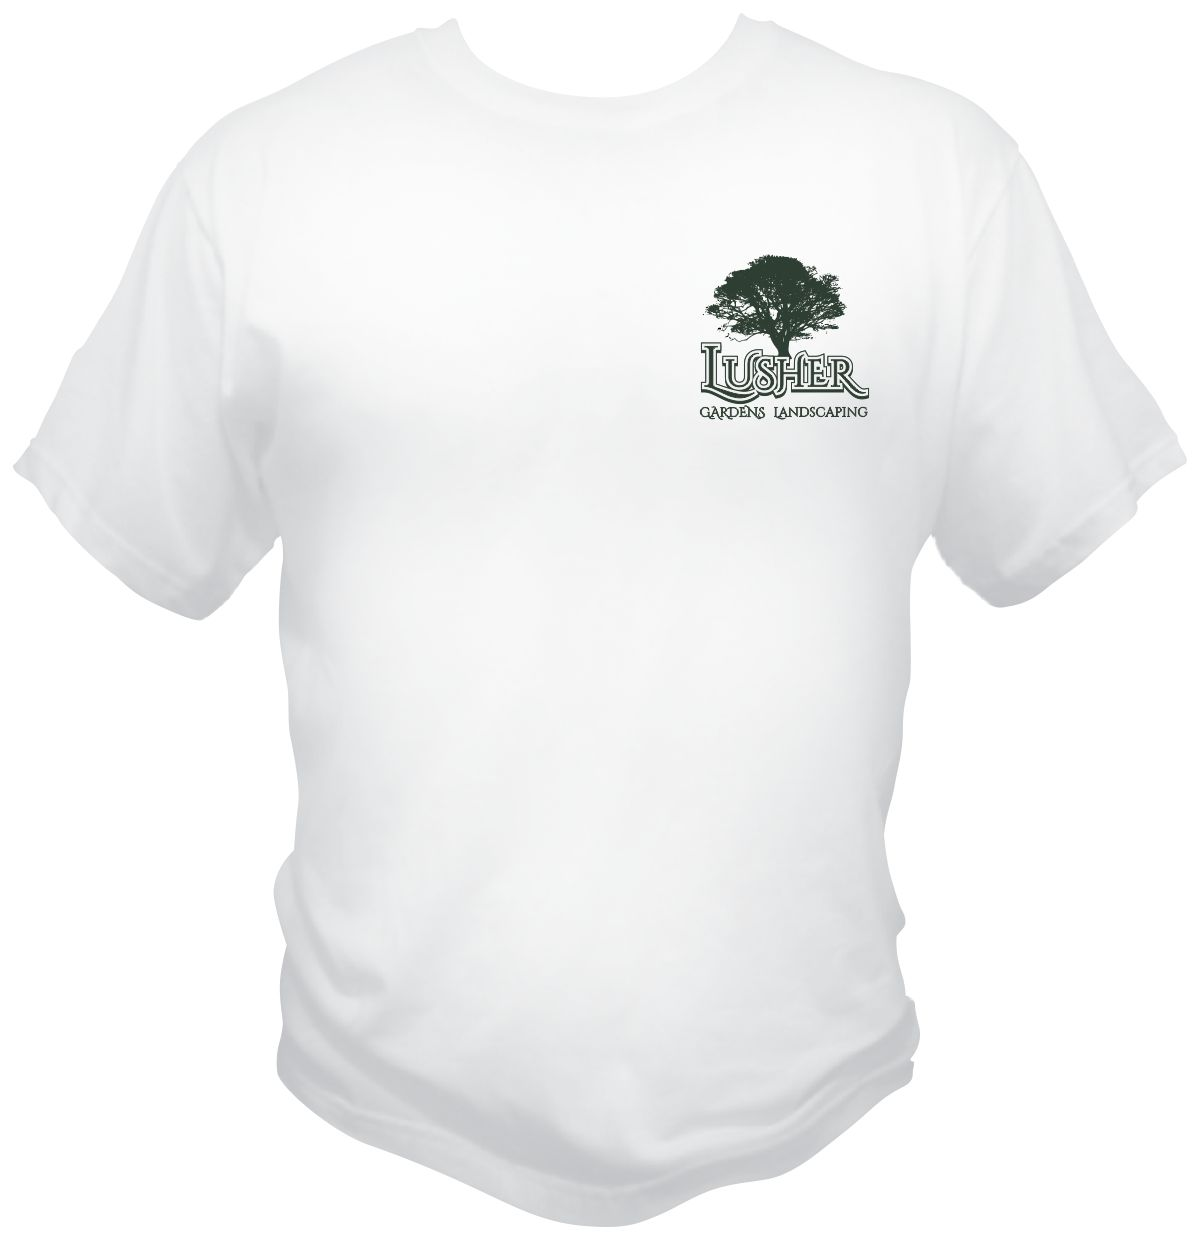 T shirt design for john smallwood by takackrist and for Garden t shirt designs